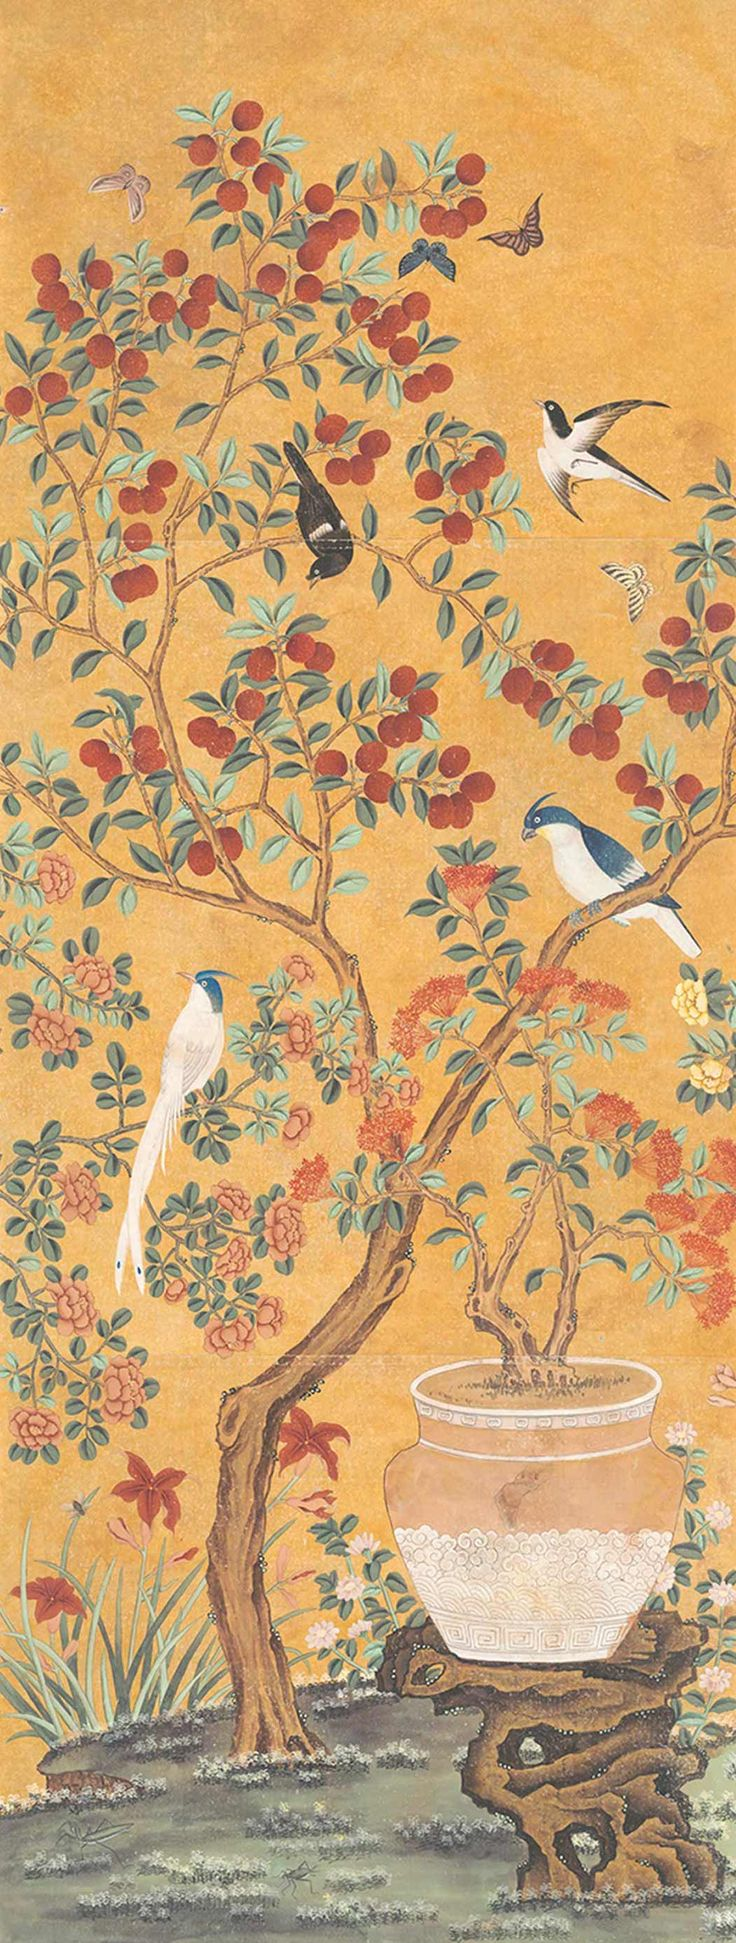 207 best 민화 images on Pinterest | Chinese painting, Chinese art ...